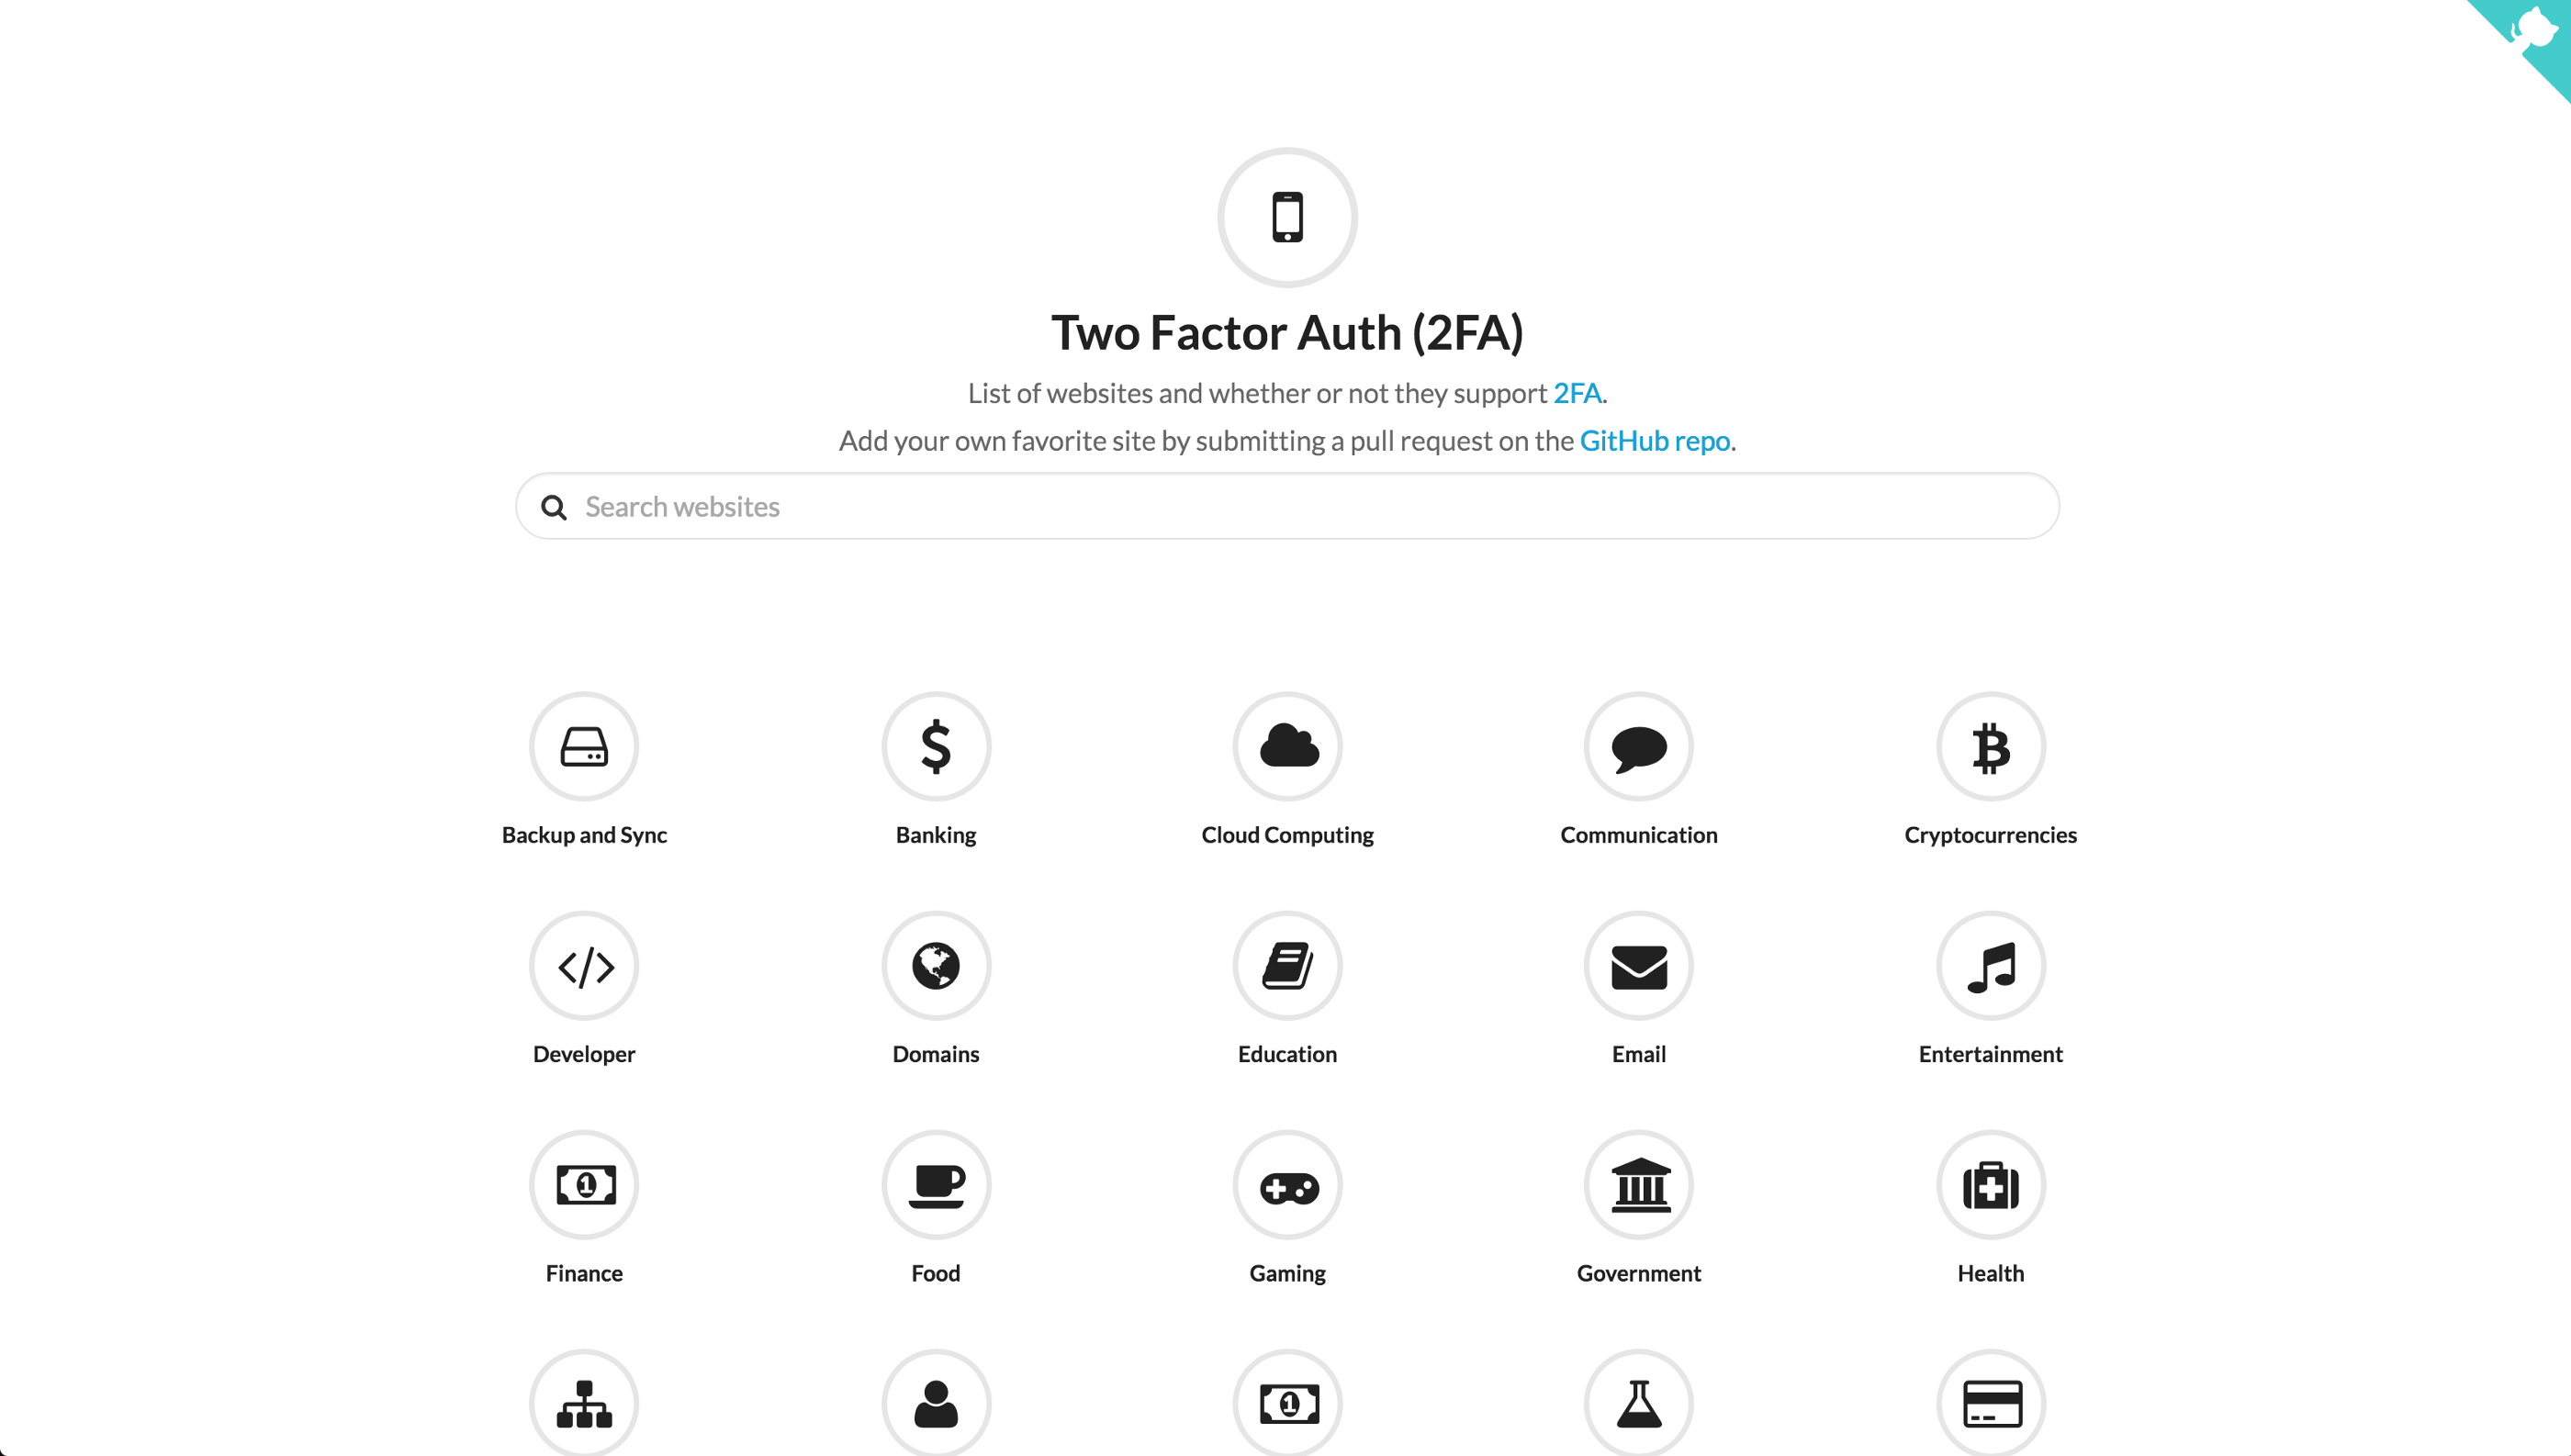 two factor auth website